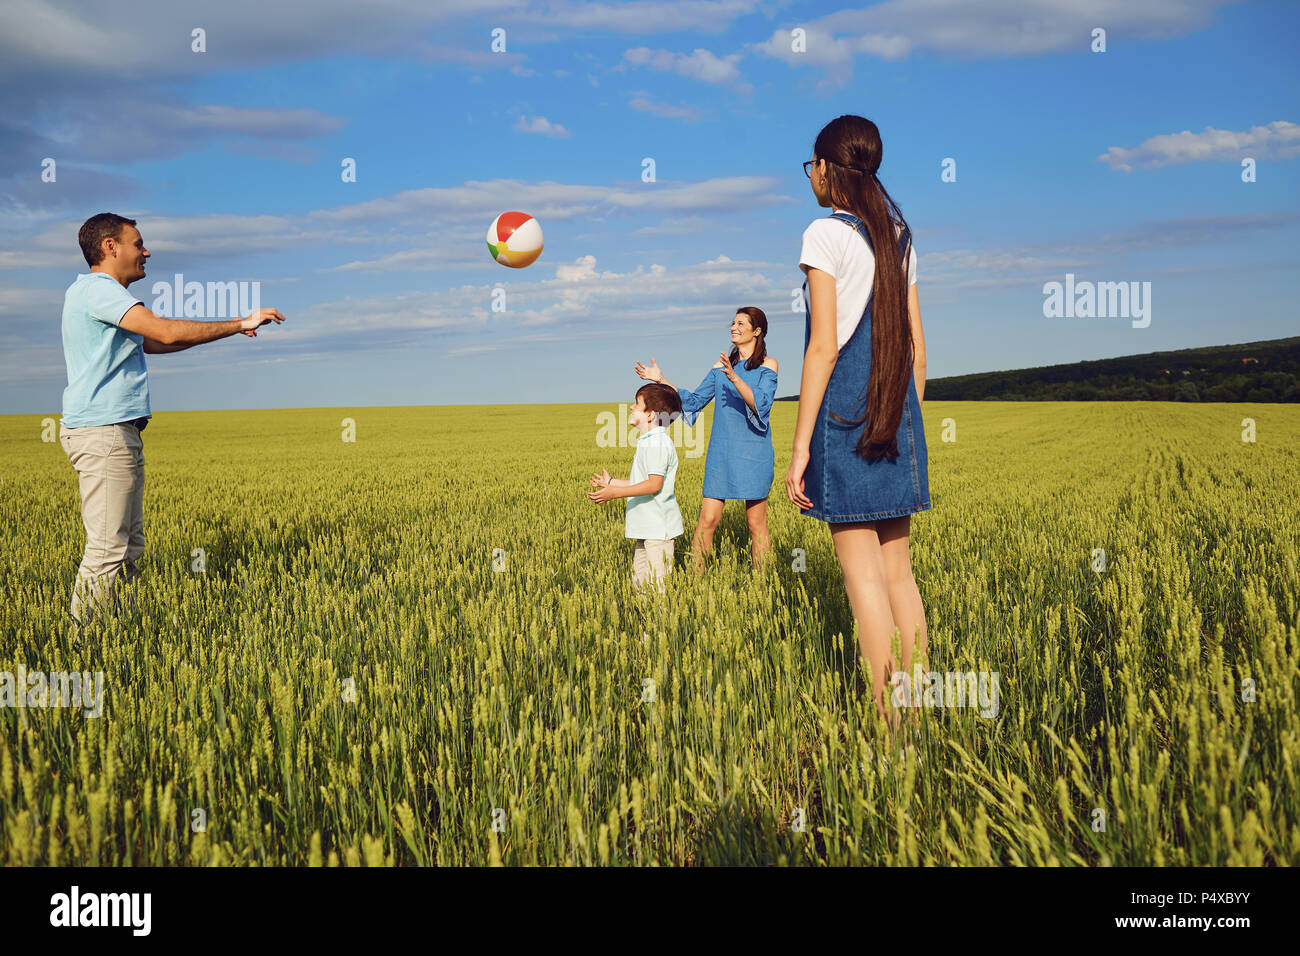 Happy family playing with ball in summer field - Stock Image